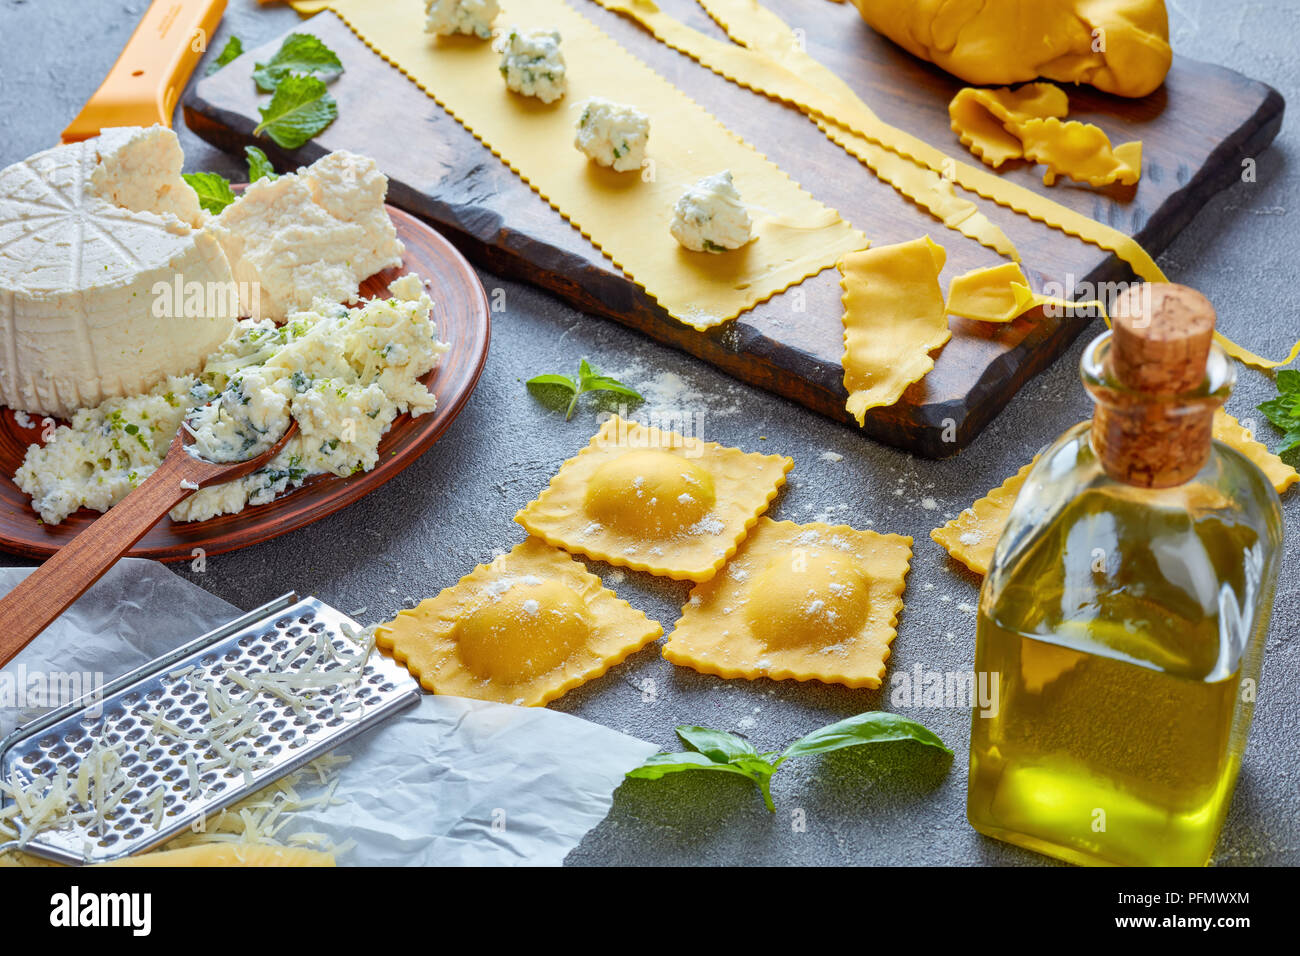 making up delicious ravioli with ricotta cheese filling mixed with finely chopped mint and basil leaves on a concrete kitchen table with ingredients,  - Stock Image